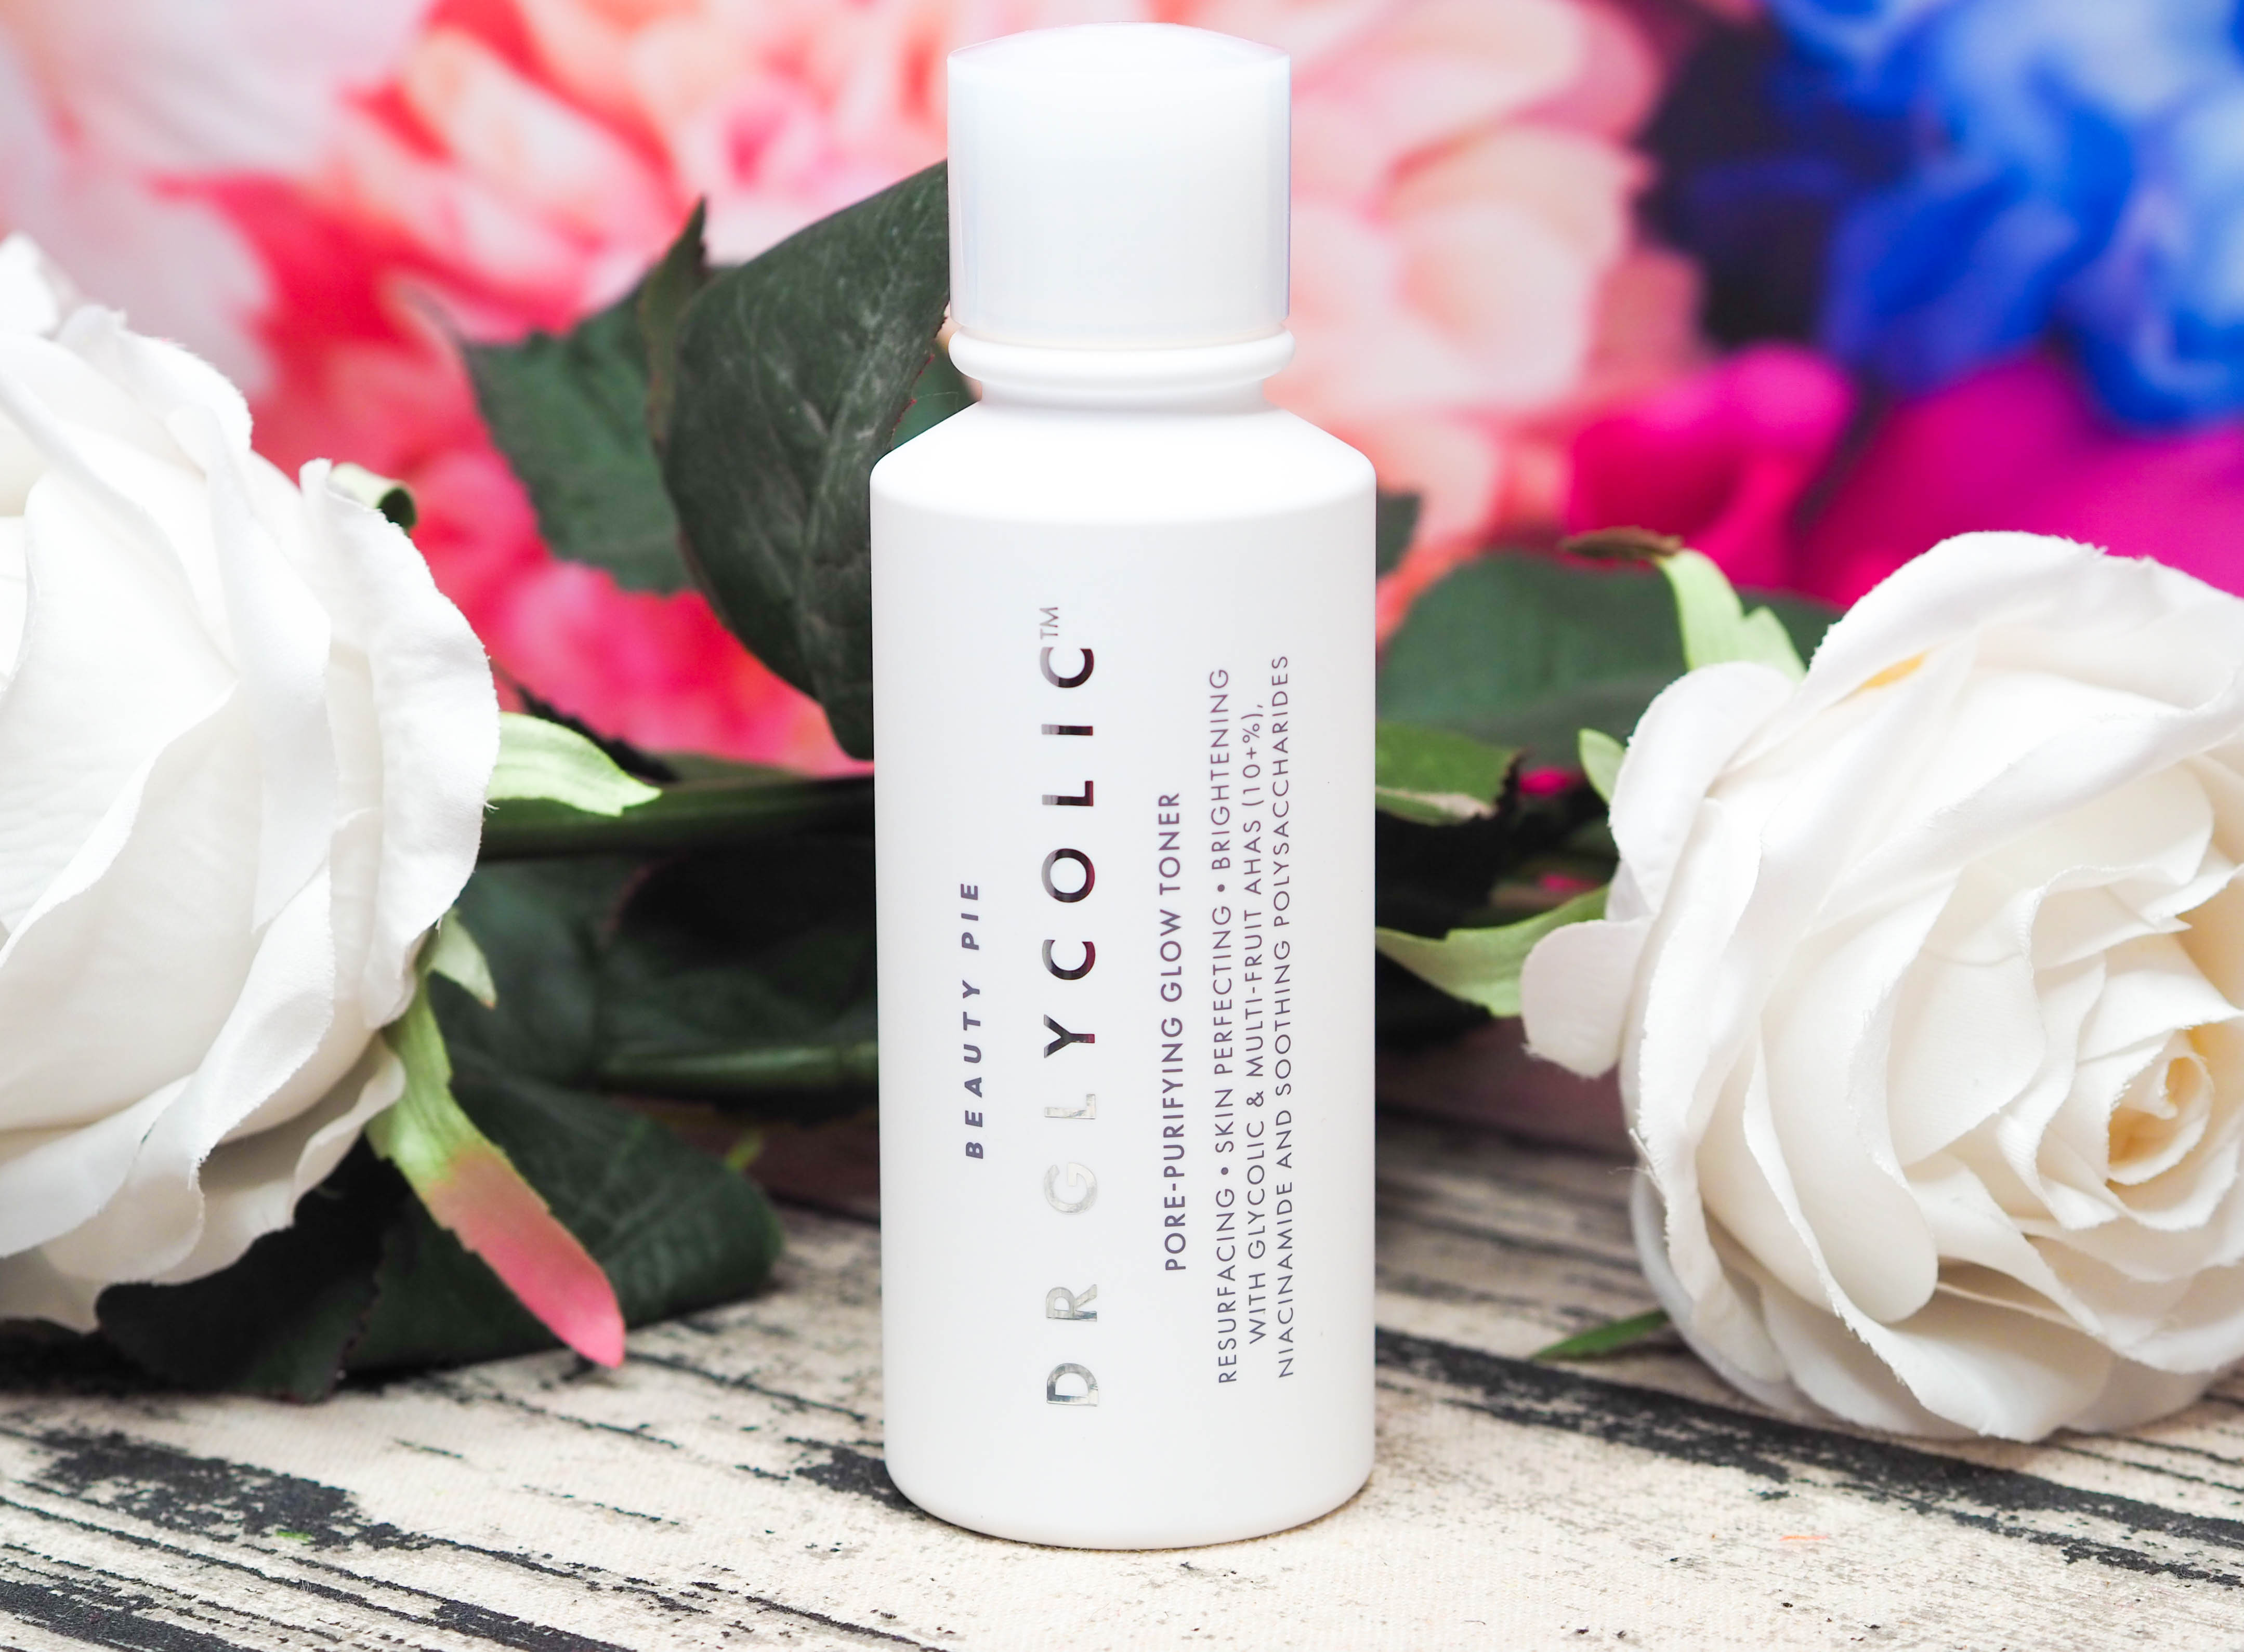 Beauty Pie Dr Glycolic Skin Perfecting Glow Toner Review